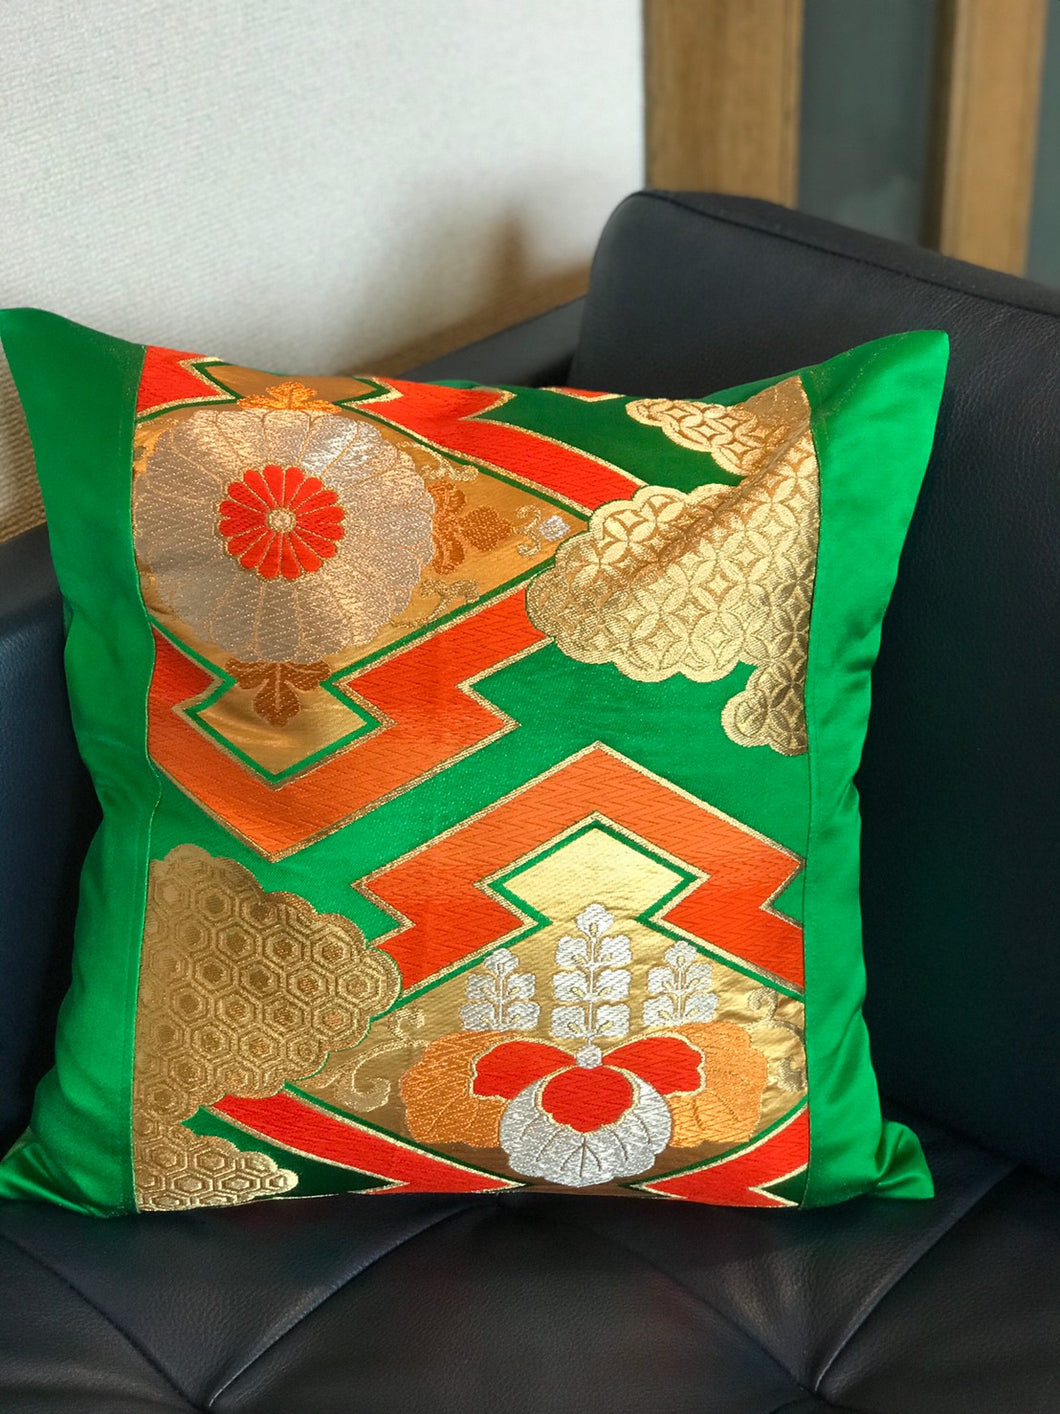 Decorative Pillow Cover with Matsukawabishi pattern and Japanese Flowers